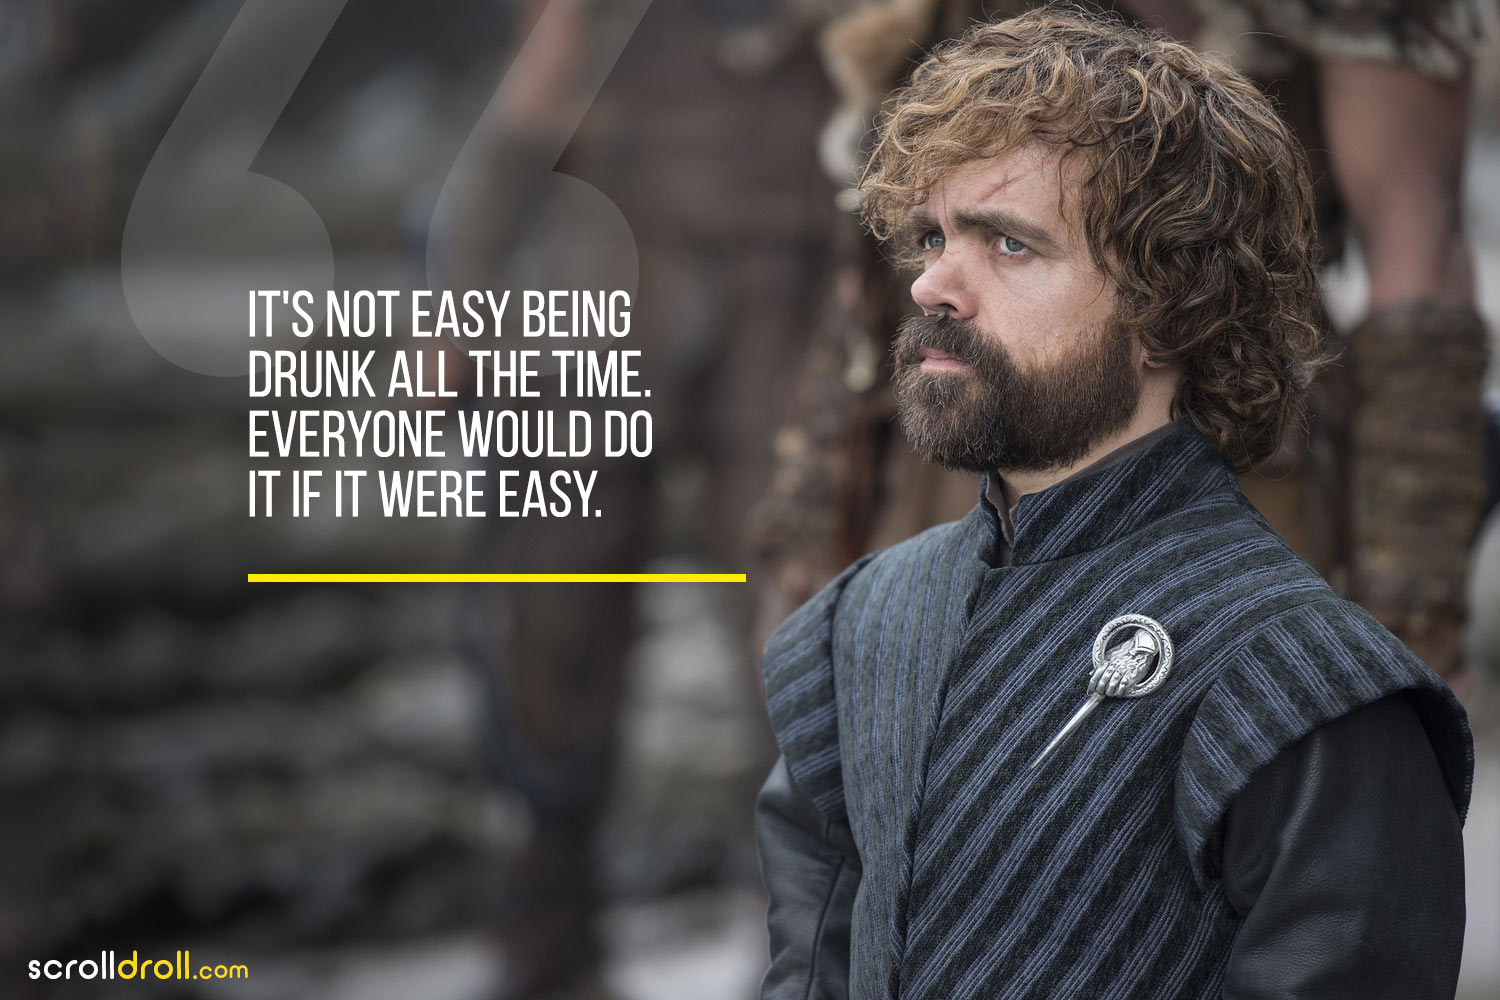 Tyrion-it's not easy being drunk all the time. everyone would do if it were easy